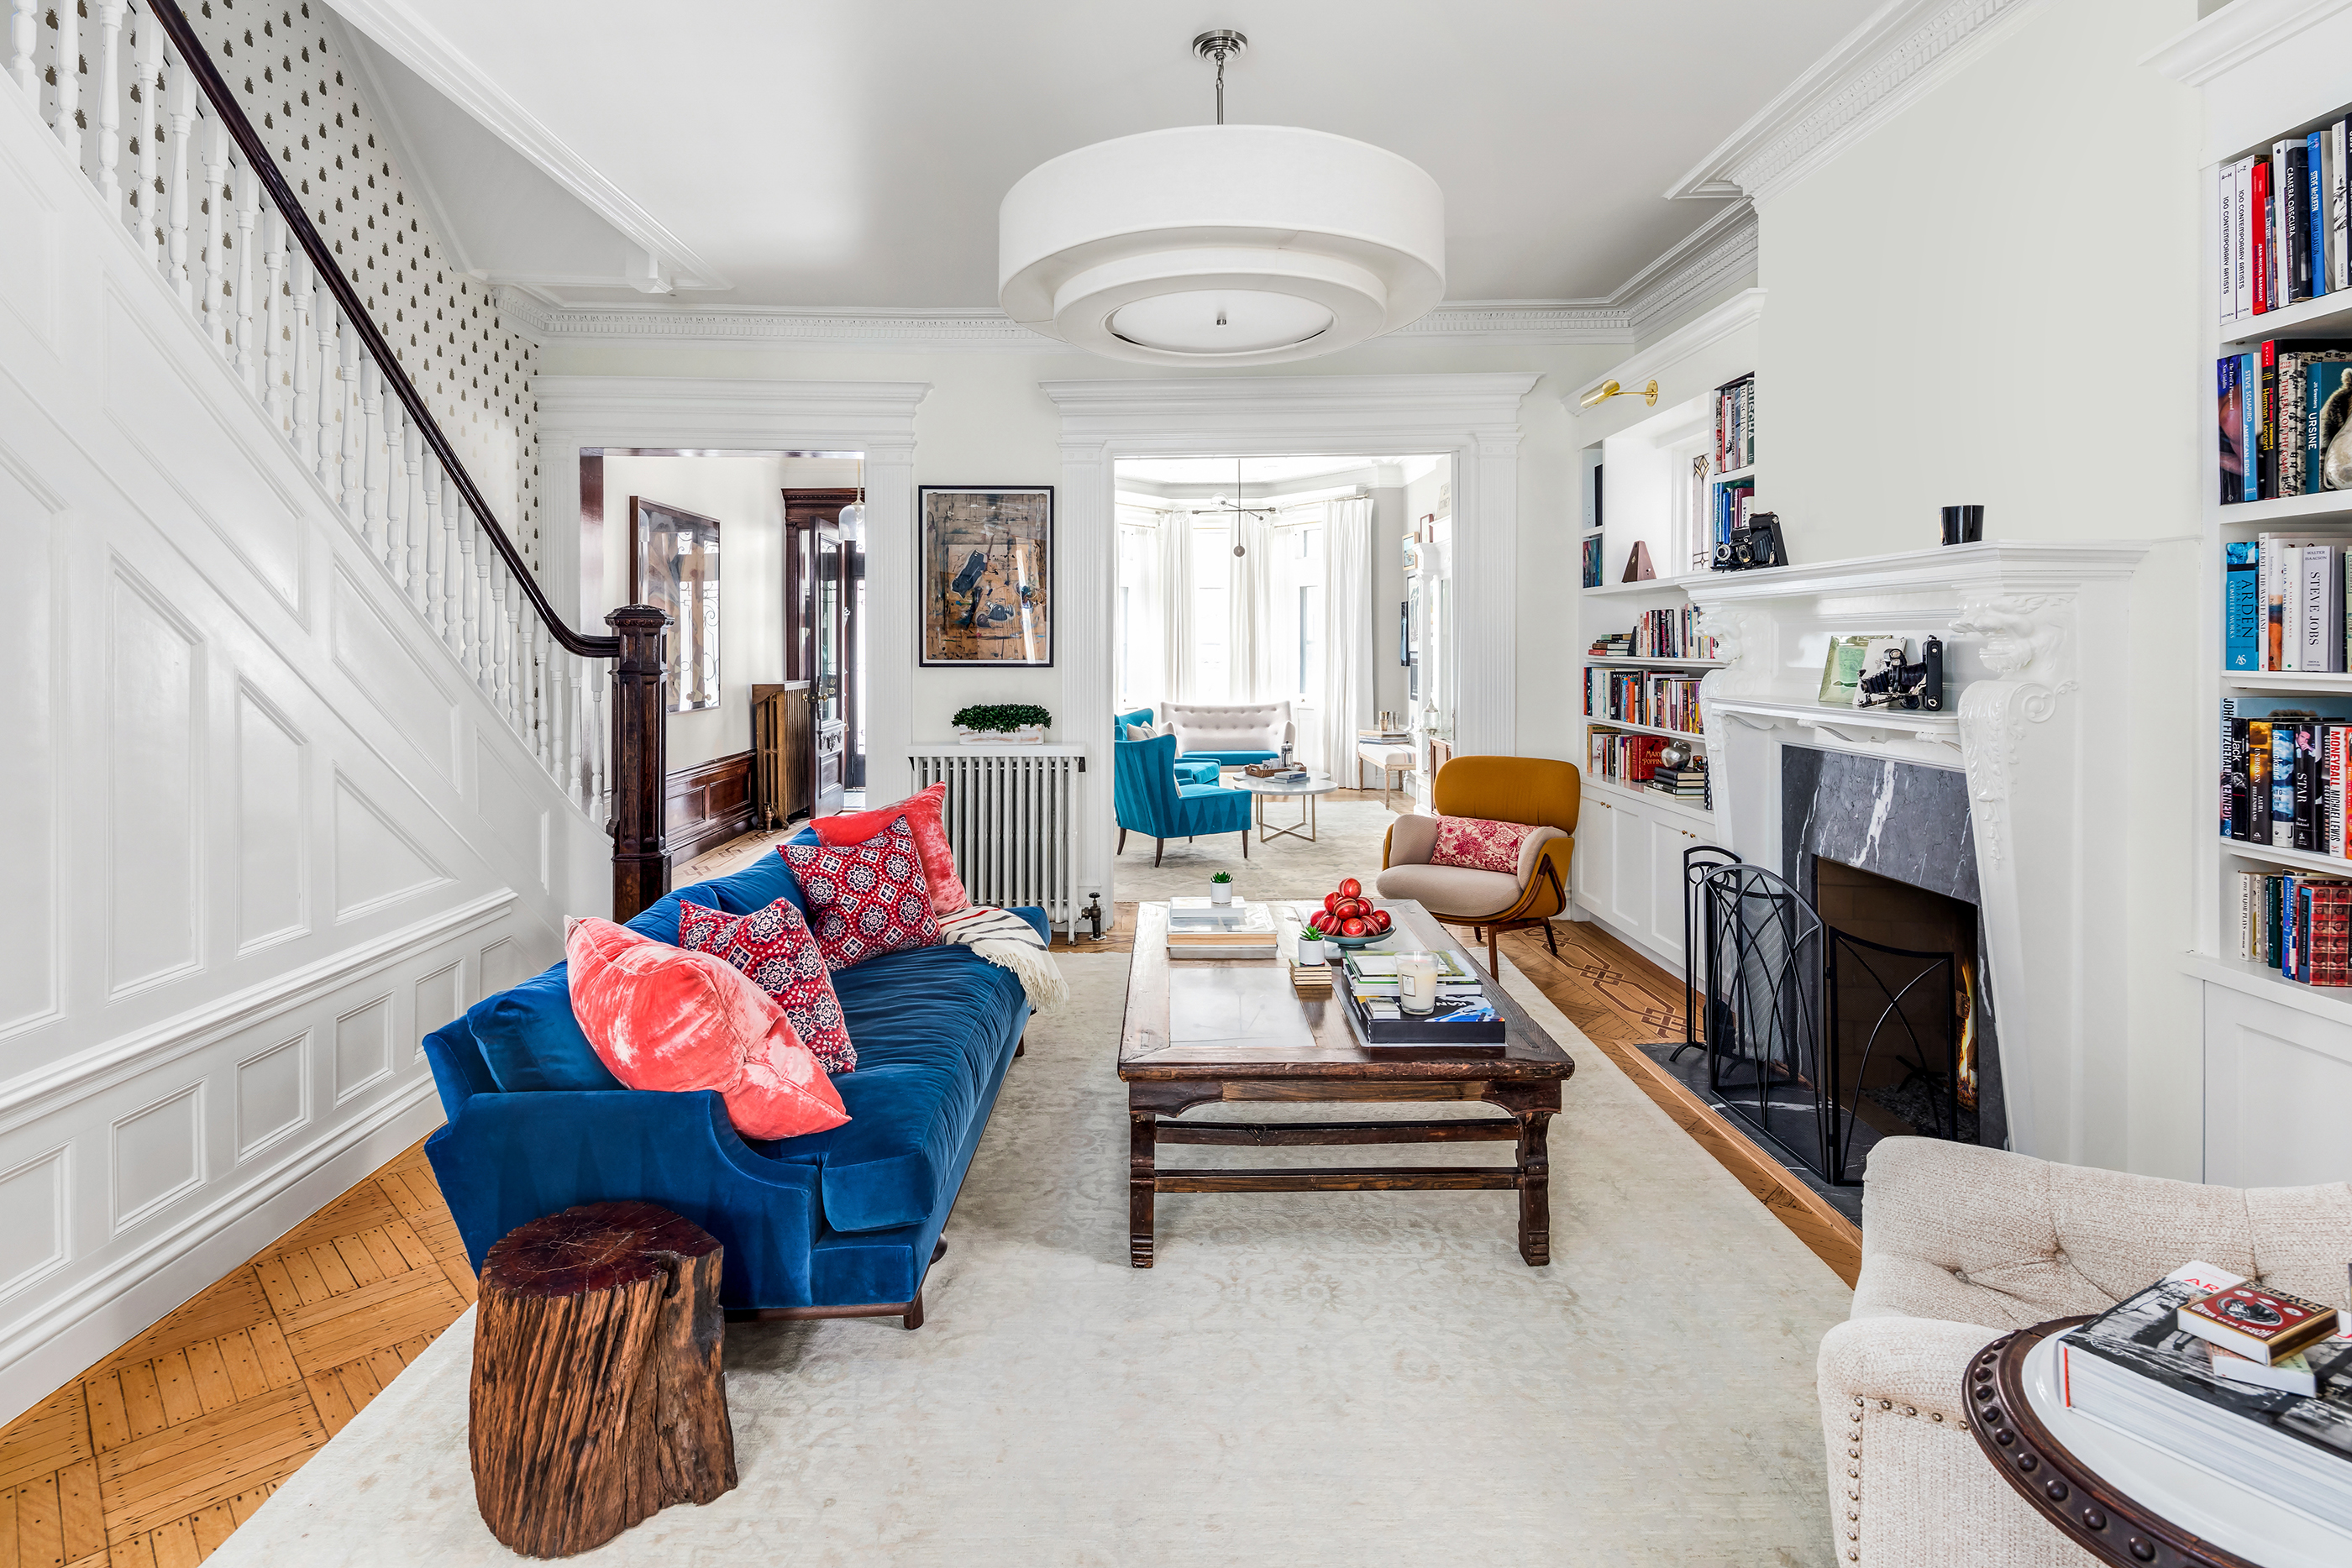 $8 Million is the Listed Price for Emily Blunt's Brooklyn Townhouse emily blunt's brooklyn townhouse $8 Million is the Listed Price for Emily Blunt's Brooklyn Townhouse 8 Million is the Listed Price for Emily Blunts Brooklyn Townhouse 3